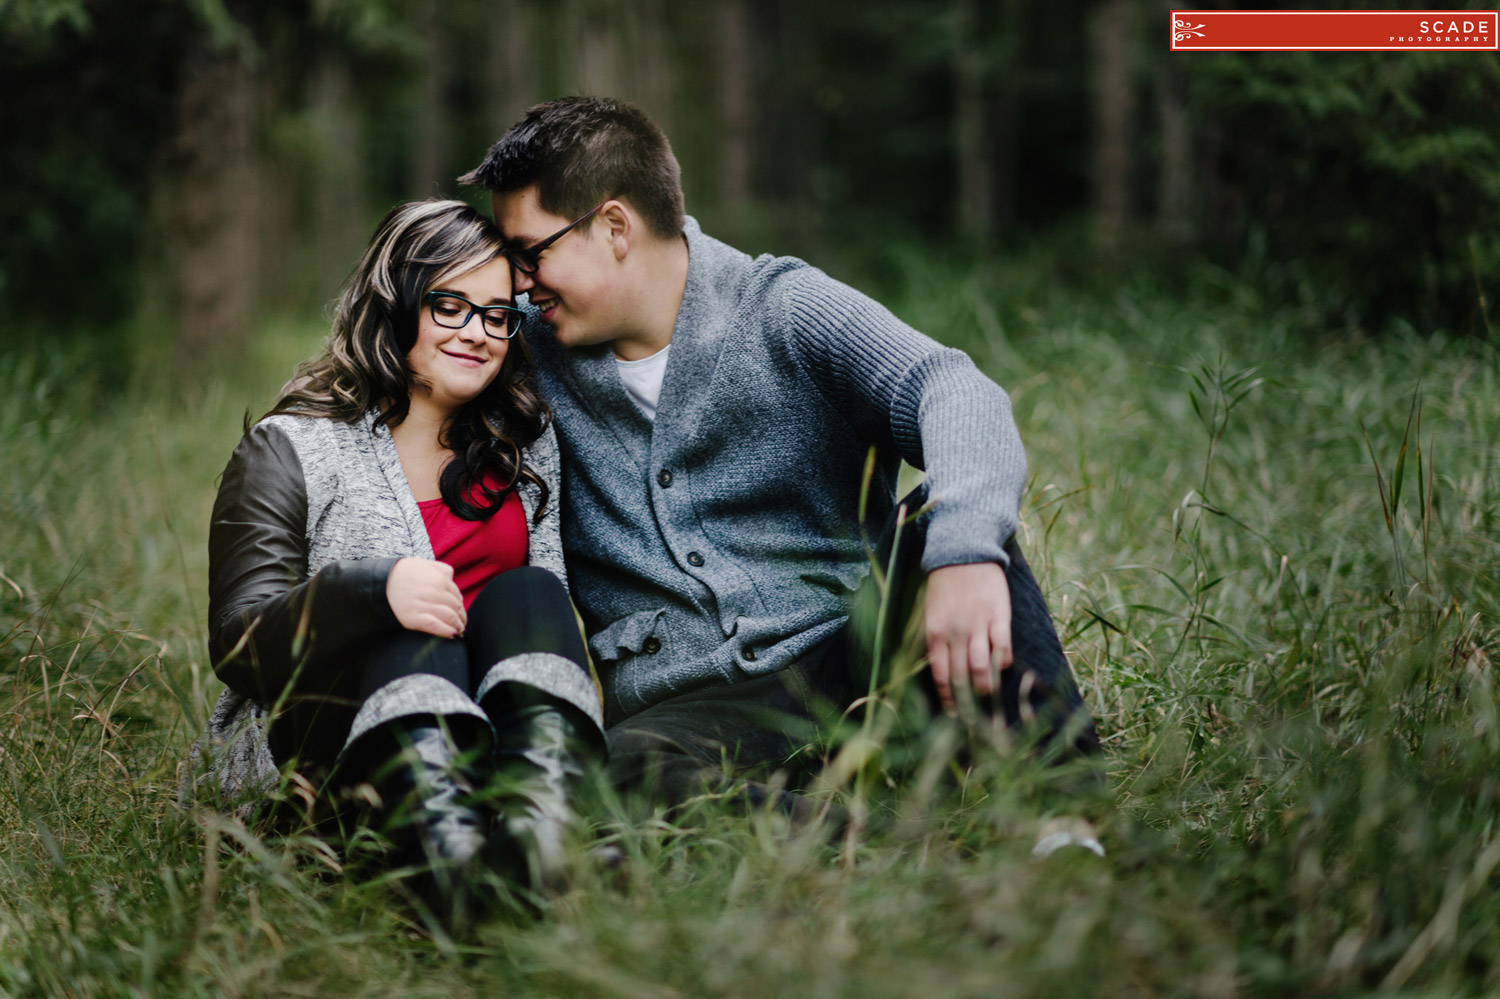 Edmonton Family and Engagement Session - Taylor and Natalia - 0016.JPG